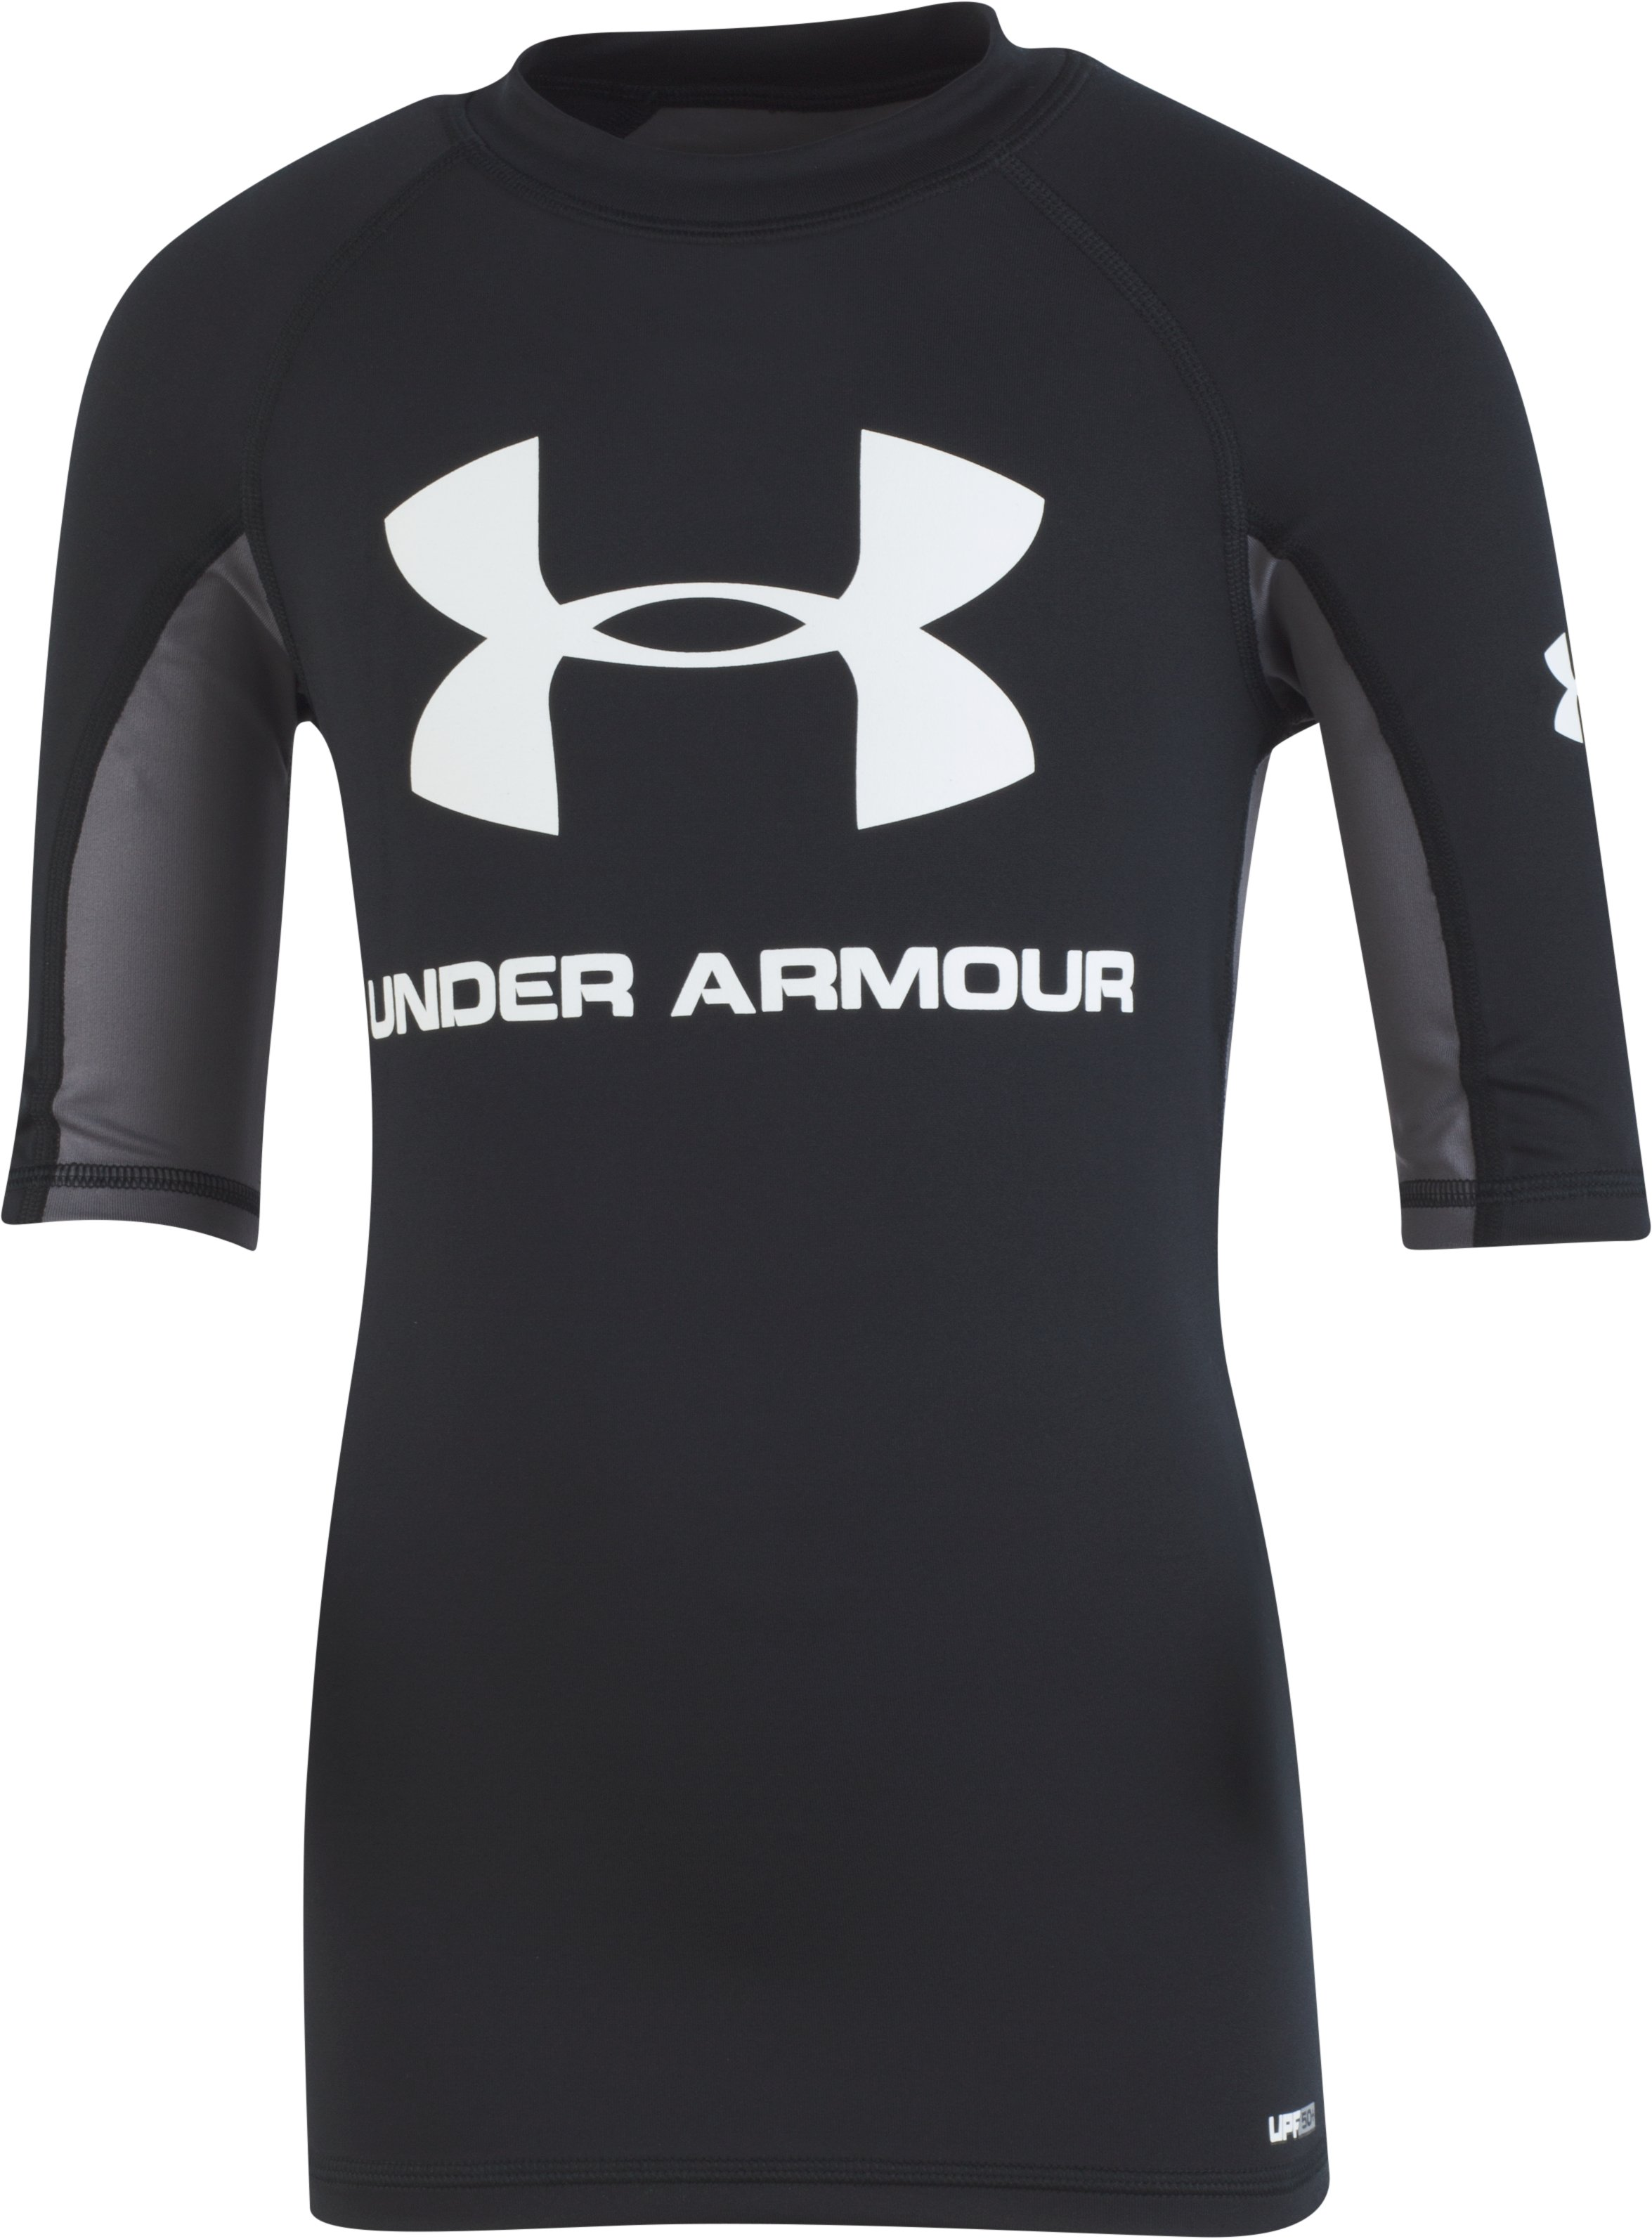 Boys' UA Compression Short Sleeve Rashguard Shirt, Black